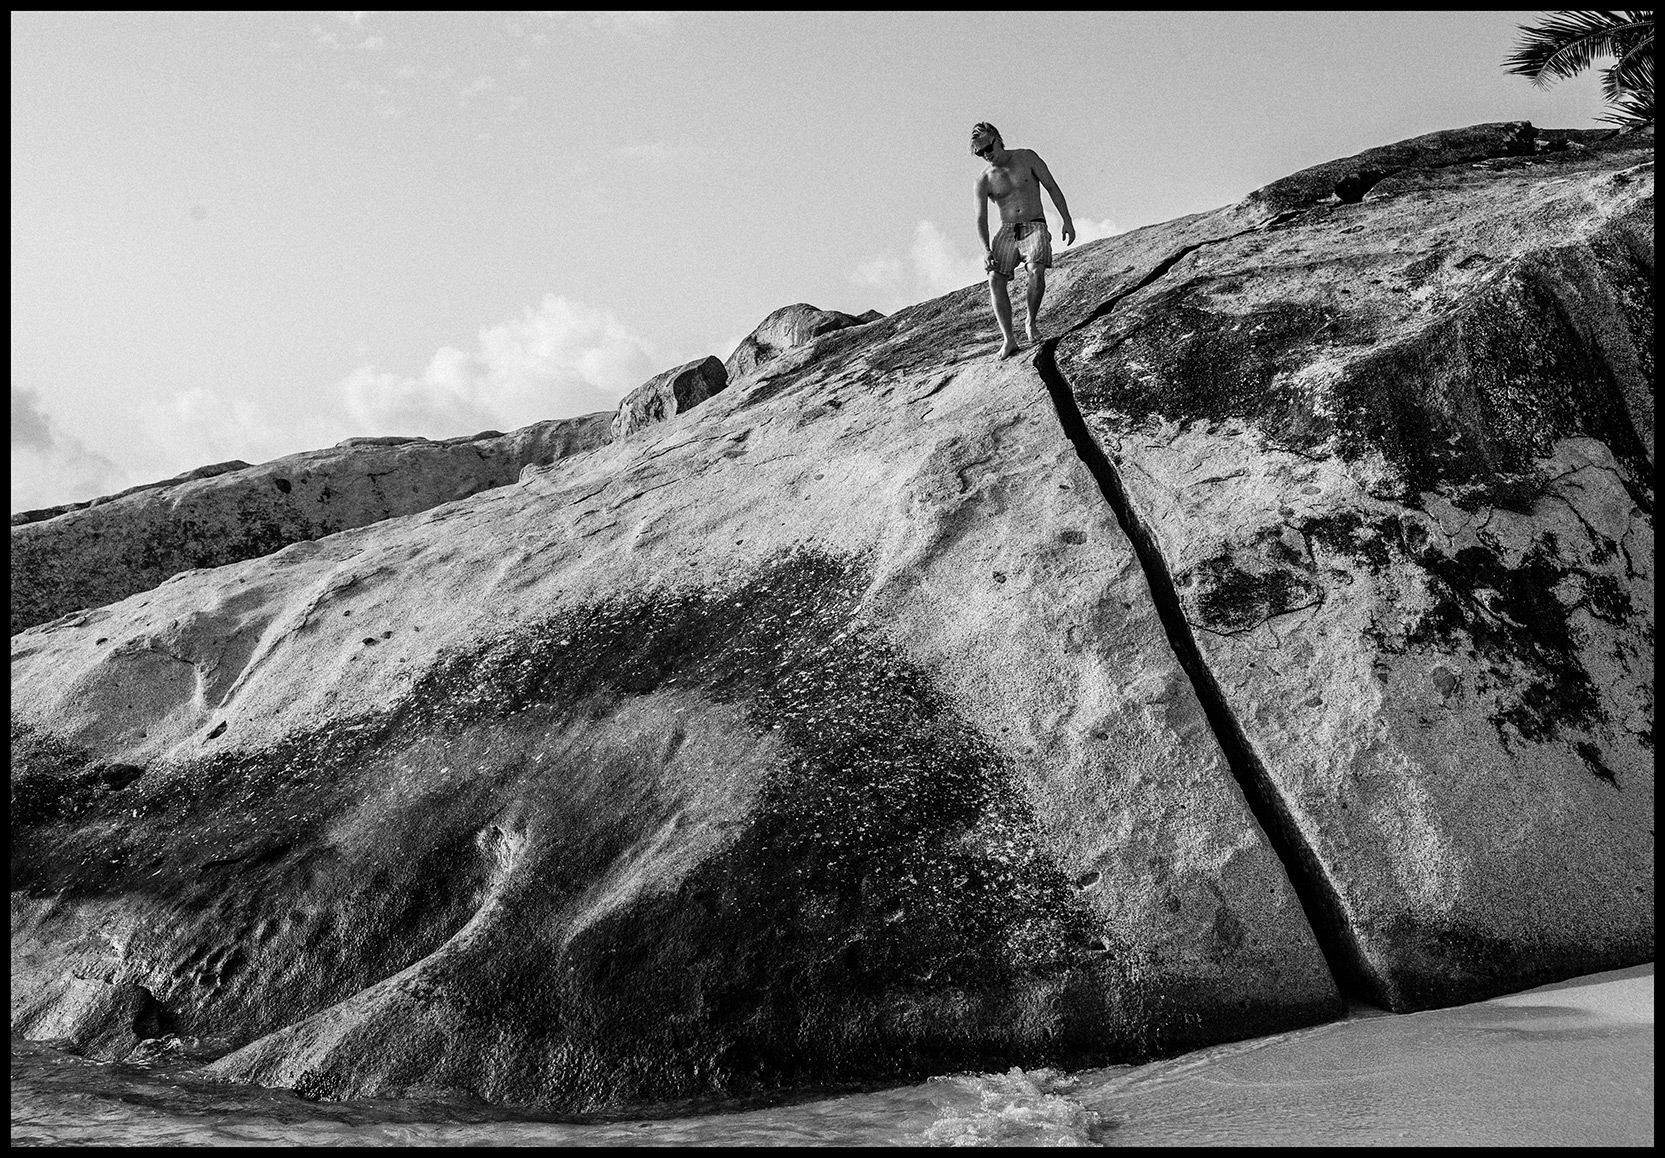 A person standing on a large rock formation on Virgin Gorda's coast